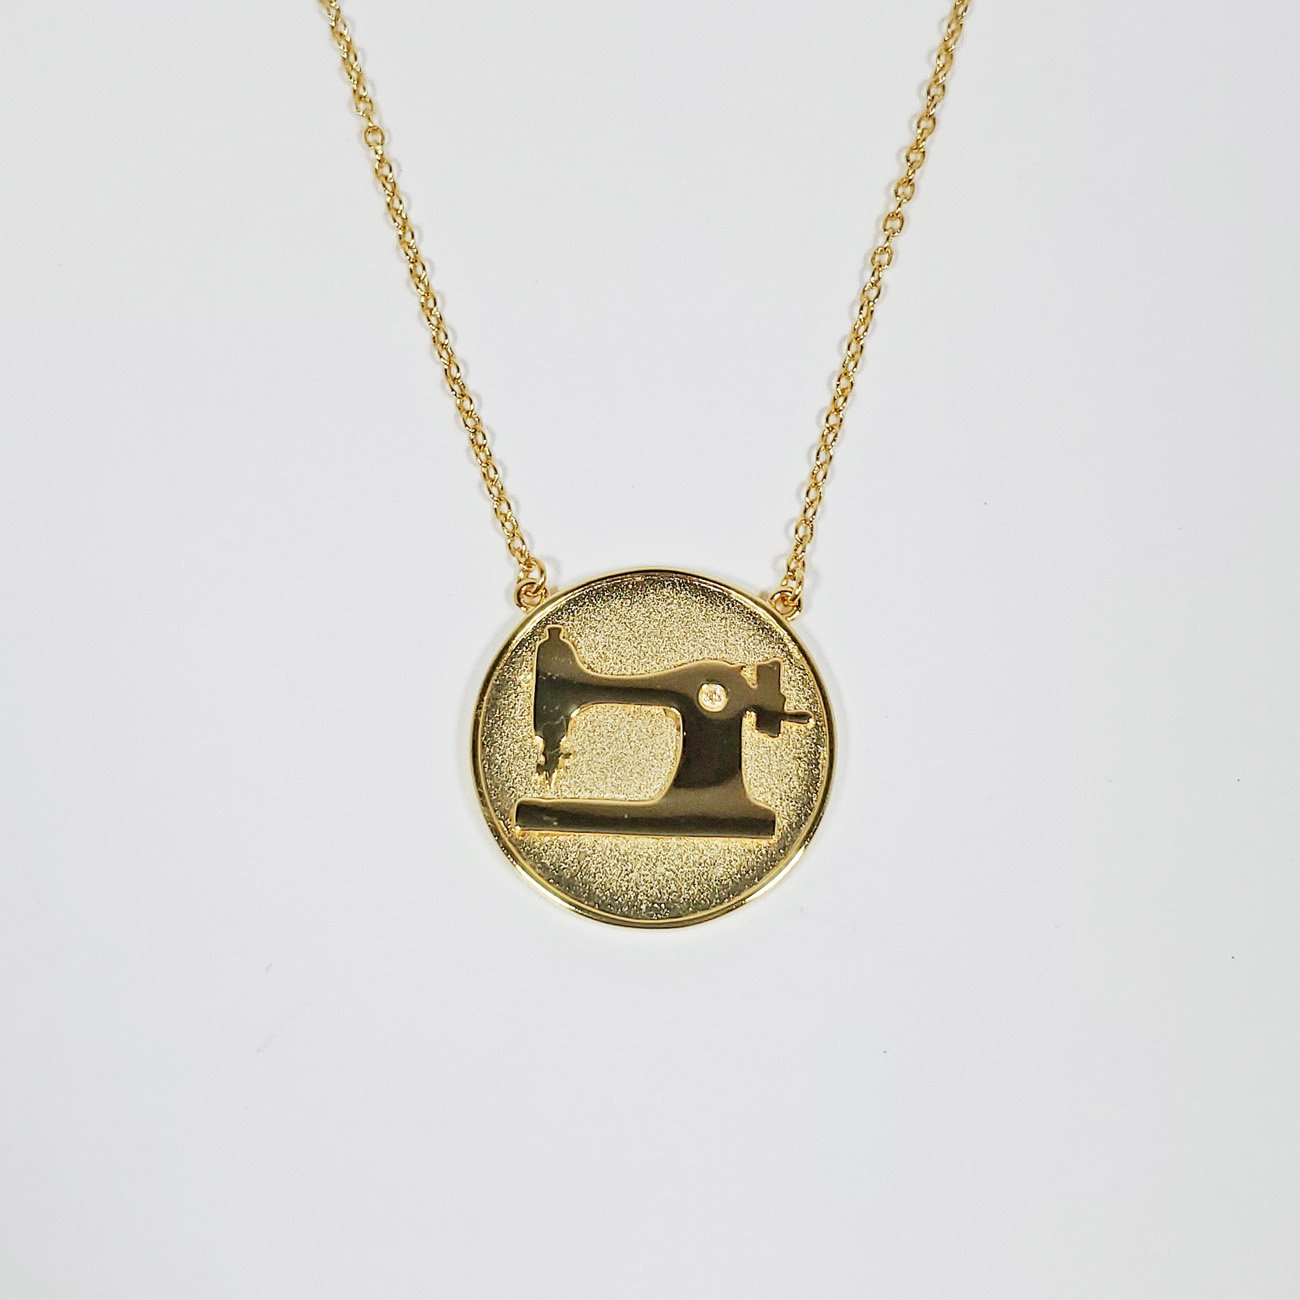 Sewing Machine Coin Pendant Gold